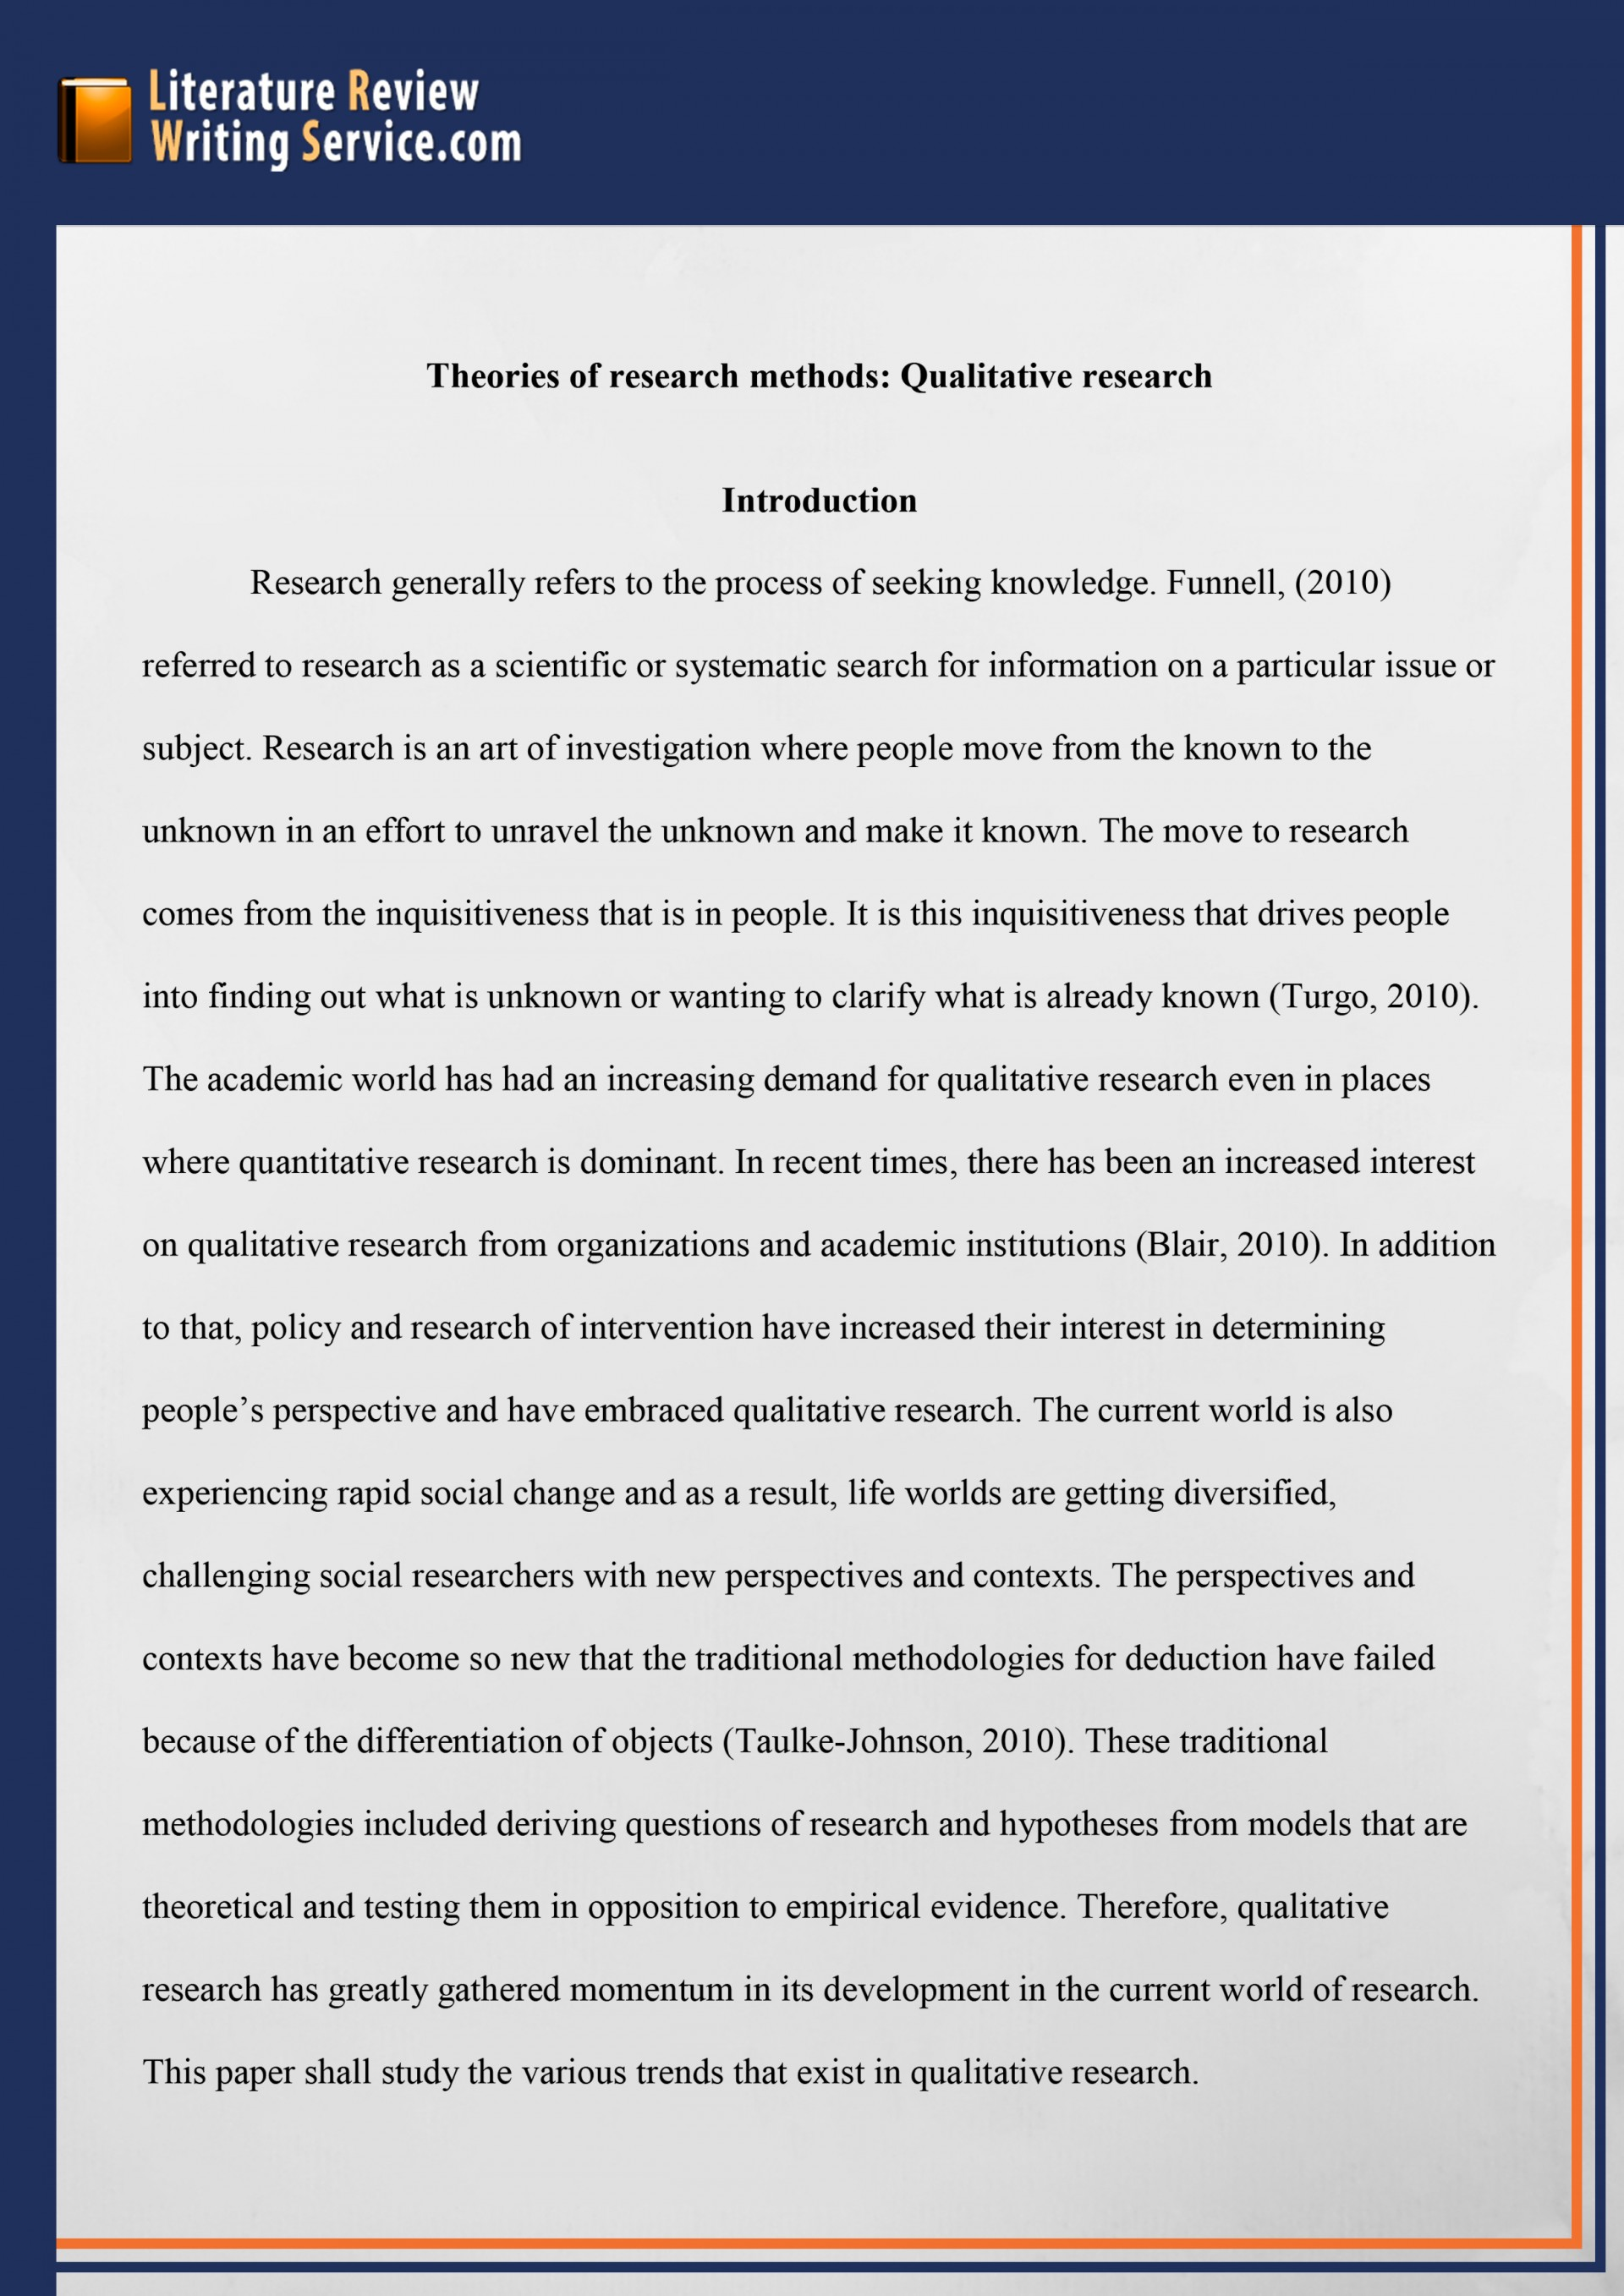 008 Research Paper Example Of An Outline For Literary Professional Dissertation Literature Review Striking A 1920